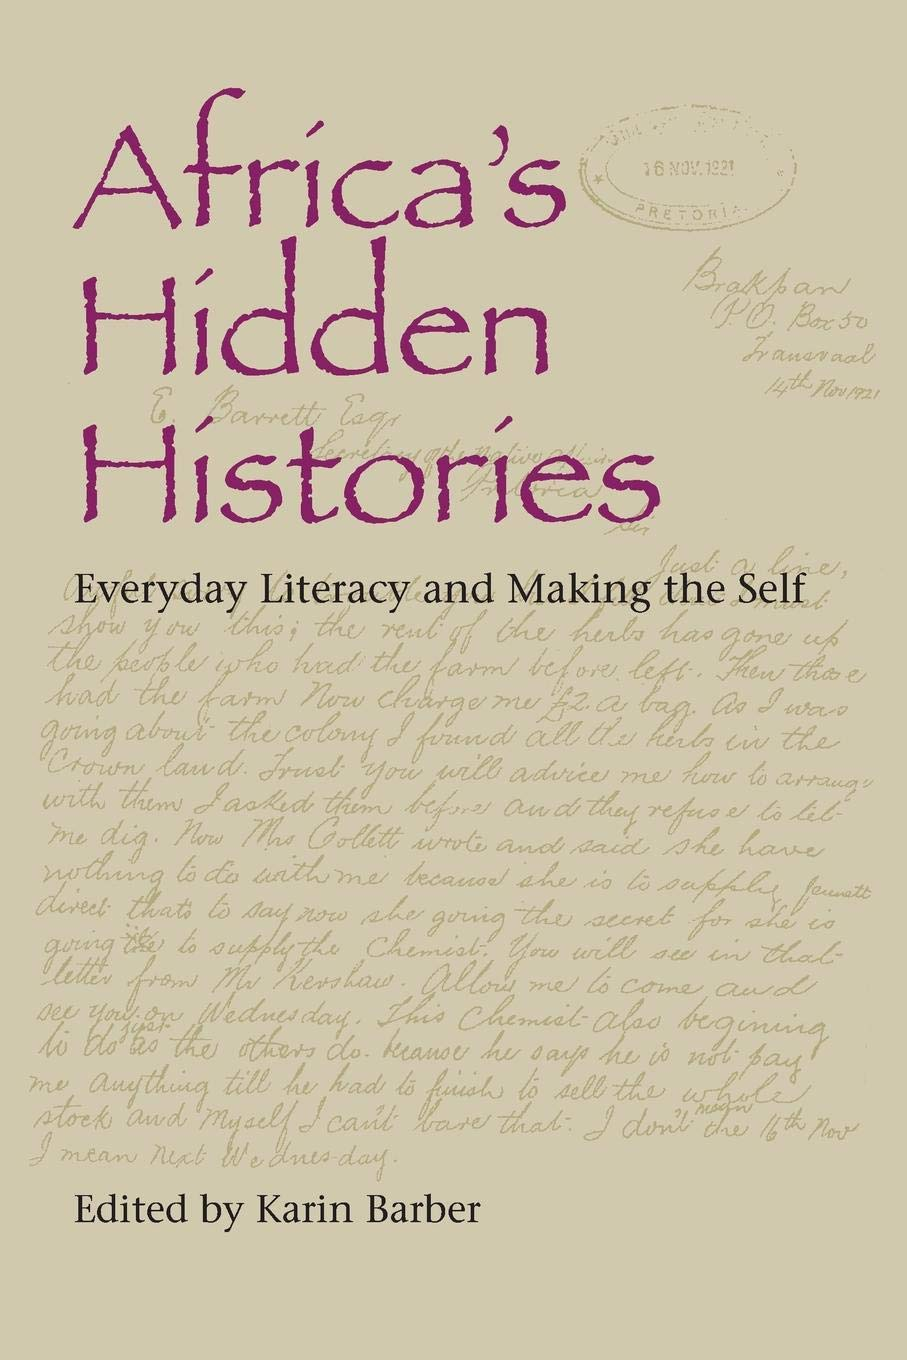 Africa's Hidden Histories: Everyday Literacy and Making the Self (African Expressive Cultures) por Karin Barber